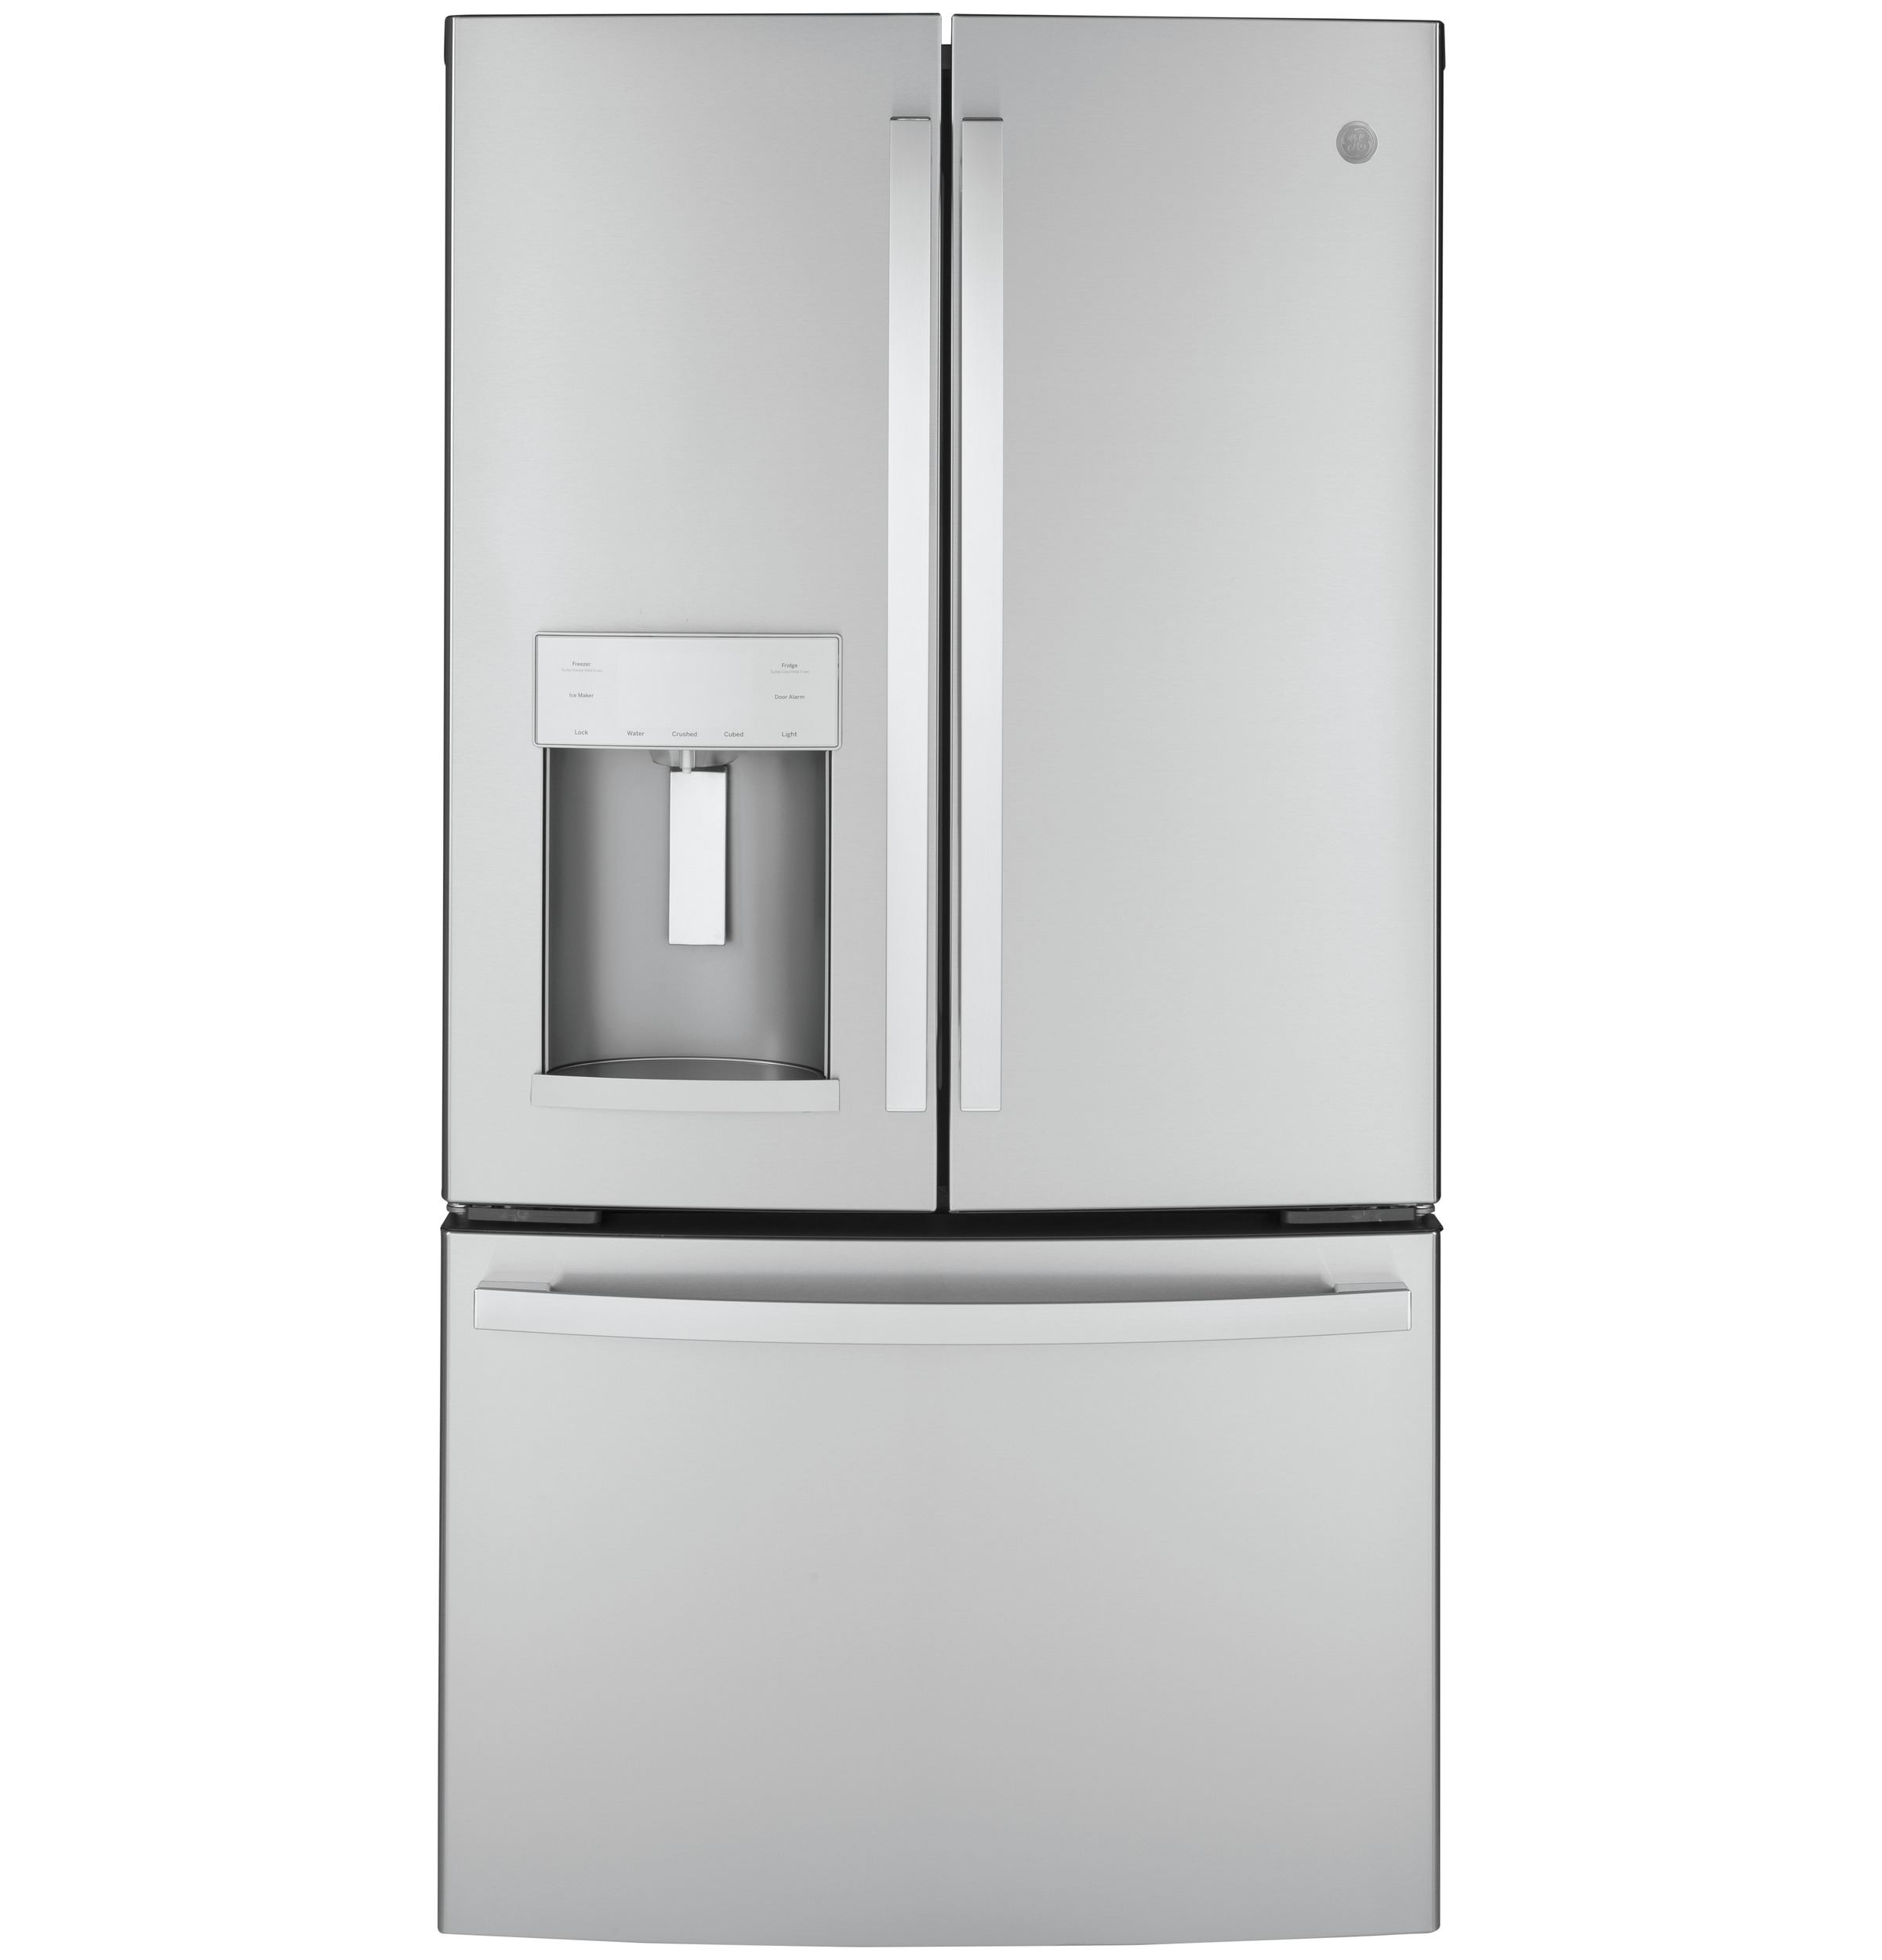 GE GE® ENERGY STAR® 22.1 Cu. Ft. Counter-Depth Fingerprint Resistant French-Door Refrigerator